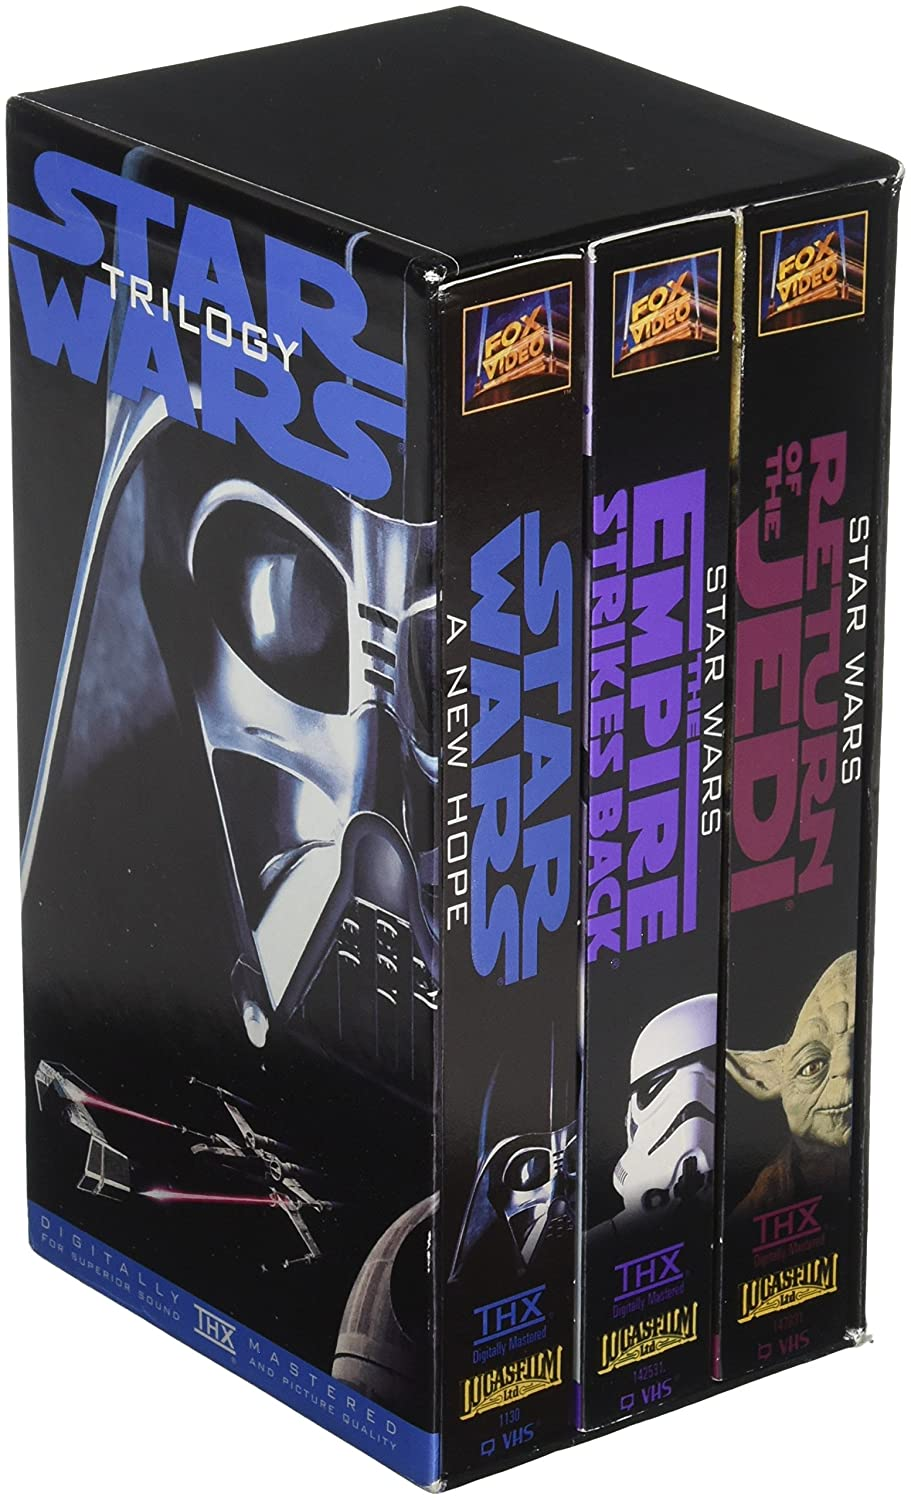 Amazon com: Original Version Star Wars Trilogy VHS Box Set